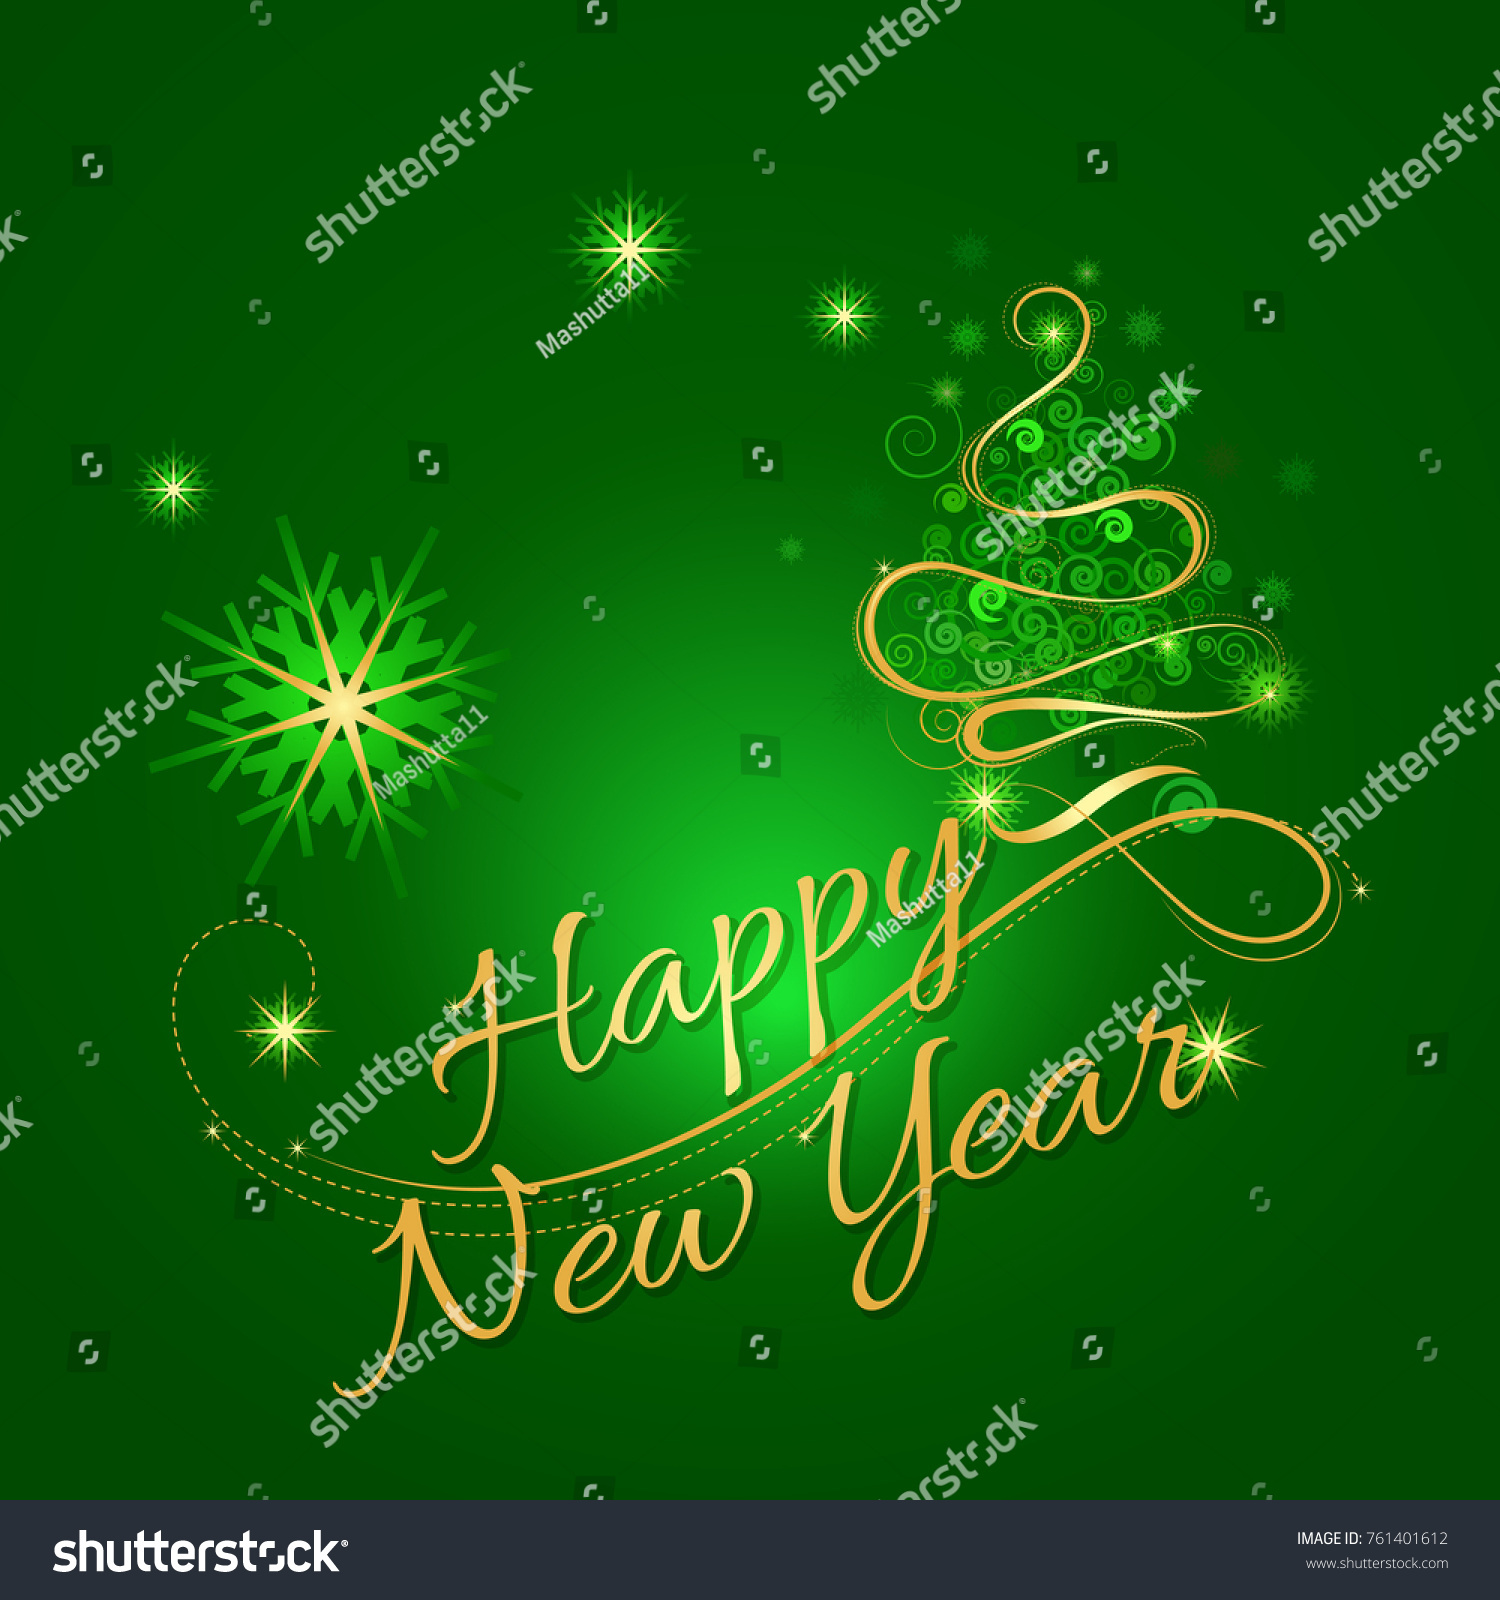 happy new year text design vector greeting illustration with decorative christmas tree calligraphic gold